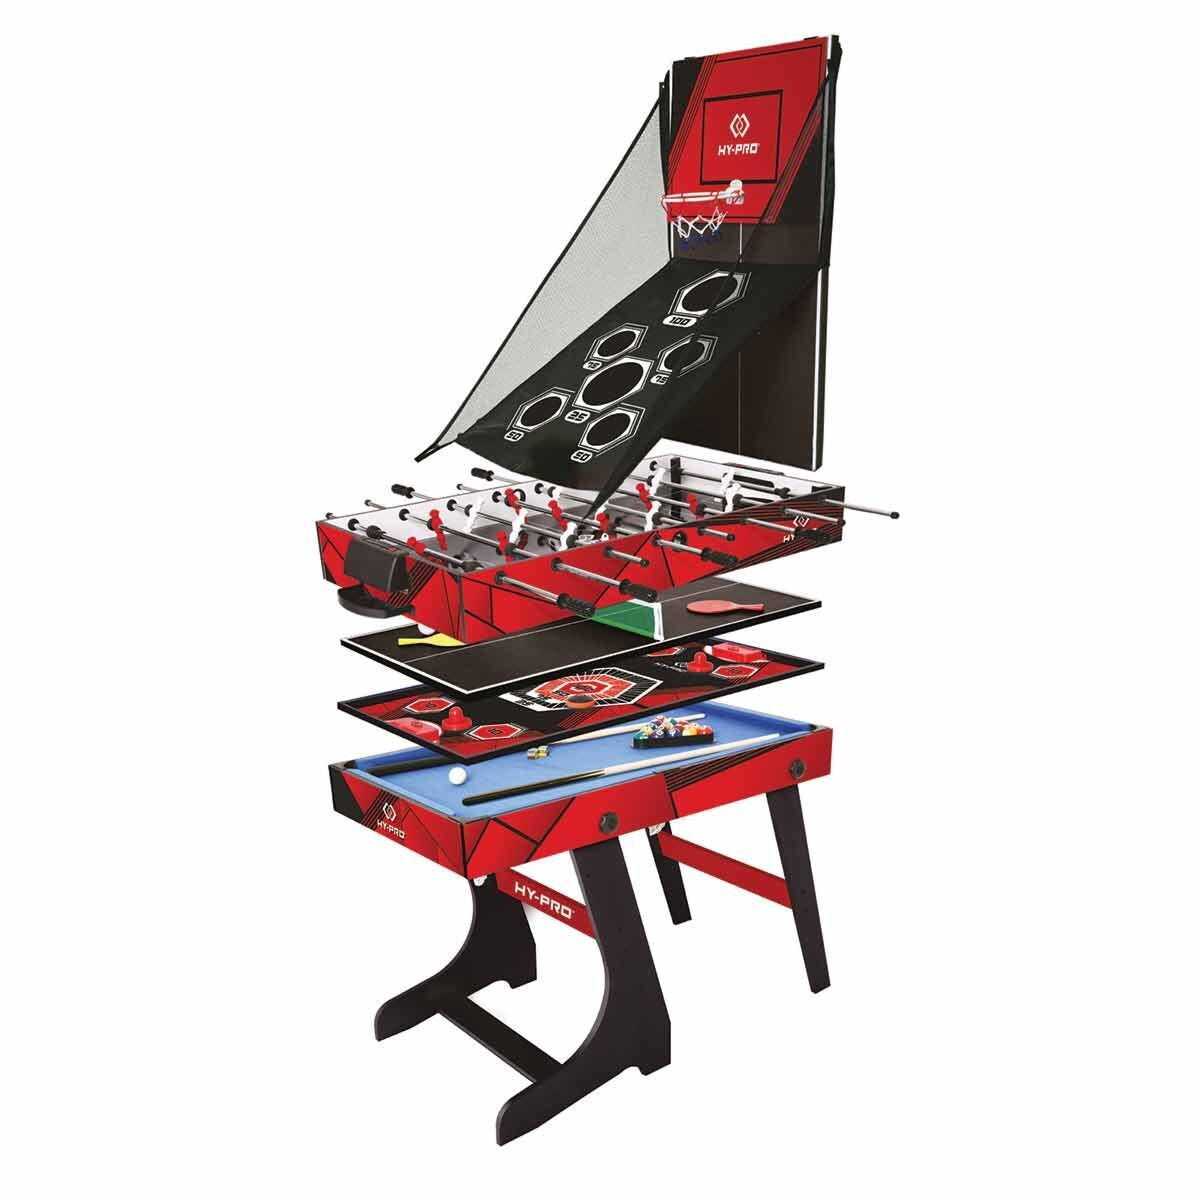 Hy-Pro 8-in-1 Games Table